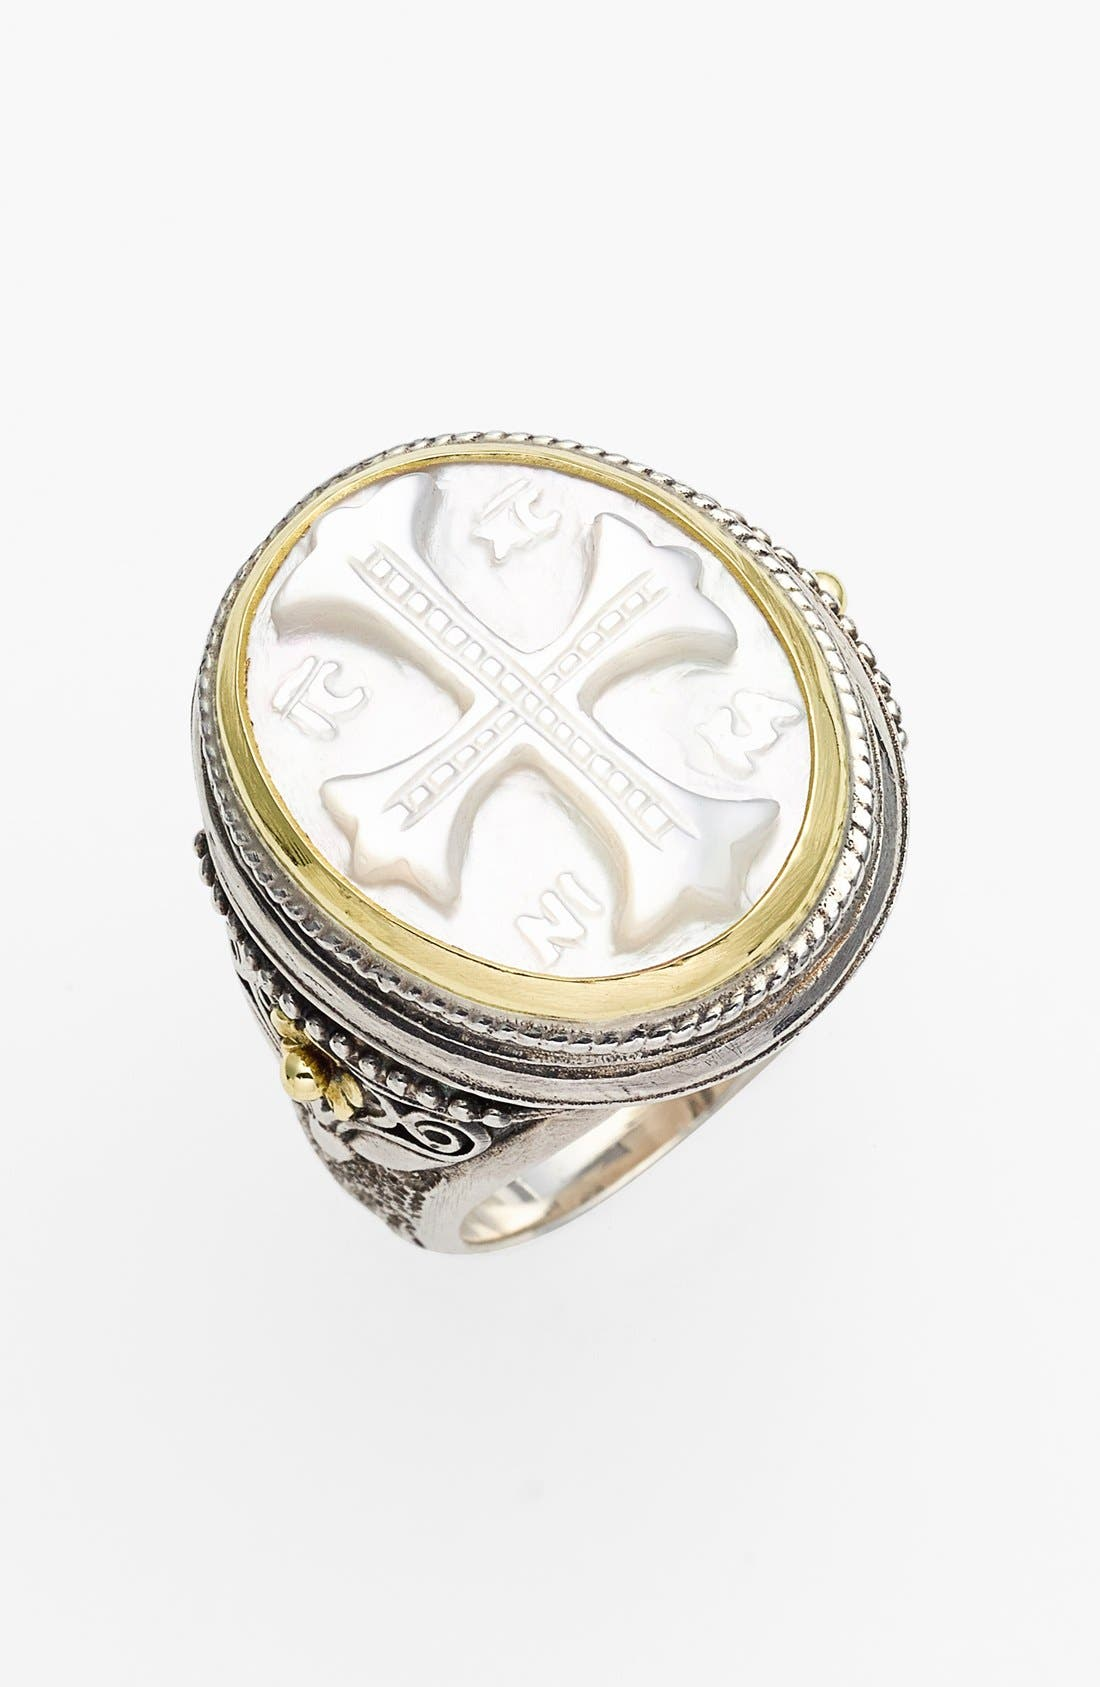 'Athena' Mother of Pearl Signet Ring,                             Main thumbnail 1, color,                             Silver/ Gold